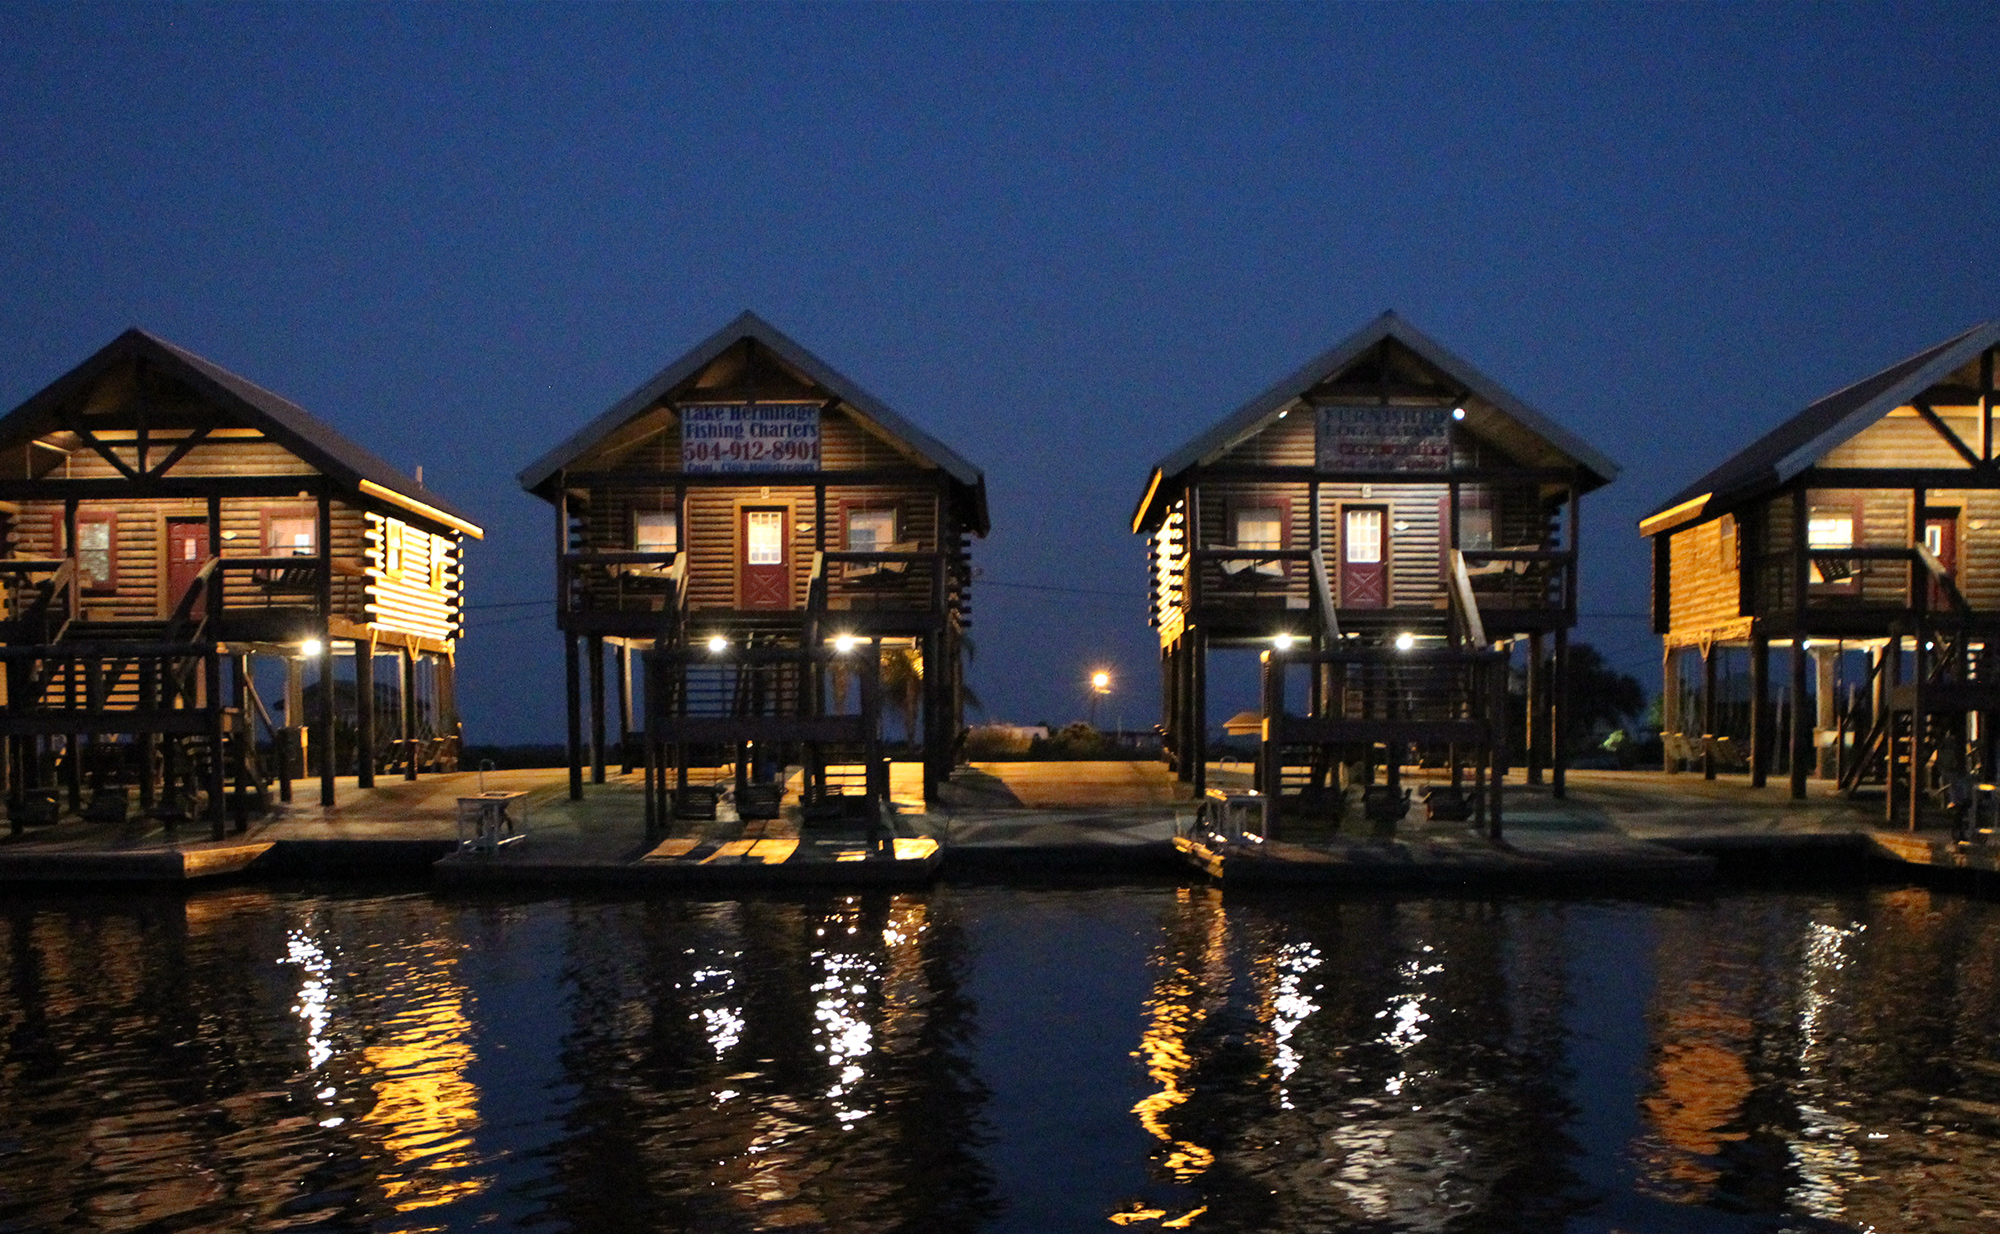 Fishing vacation log cabins on the water near venice louisiana for Venice louisiana fishing lodge